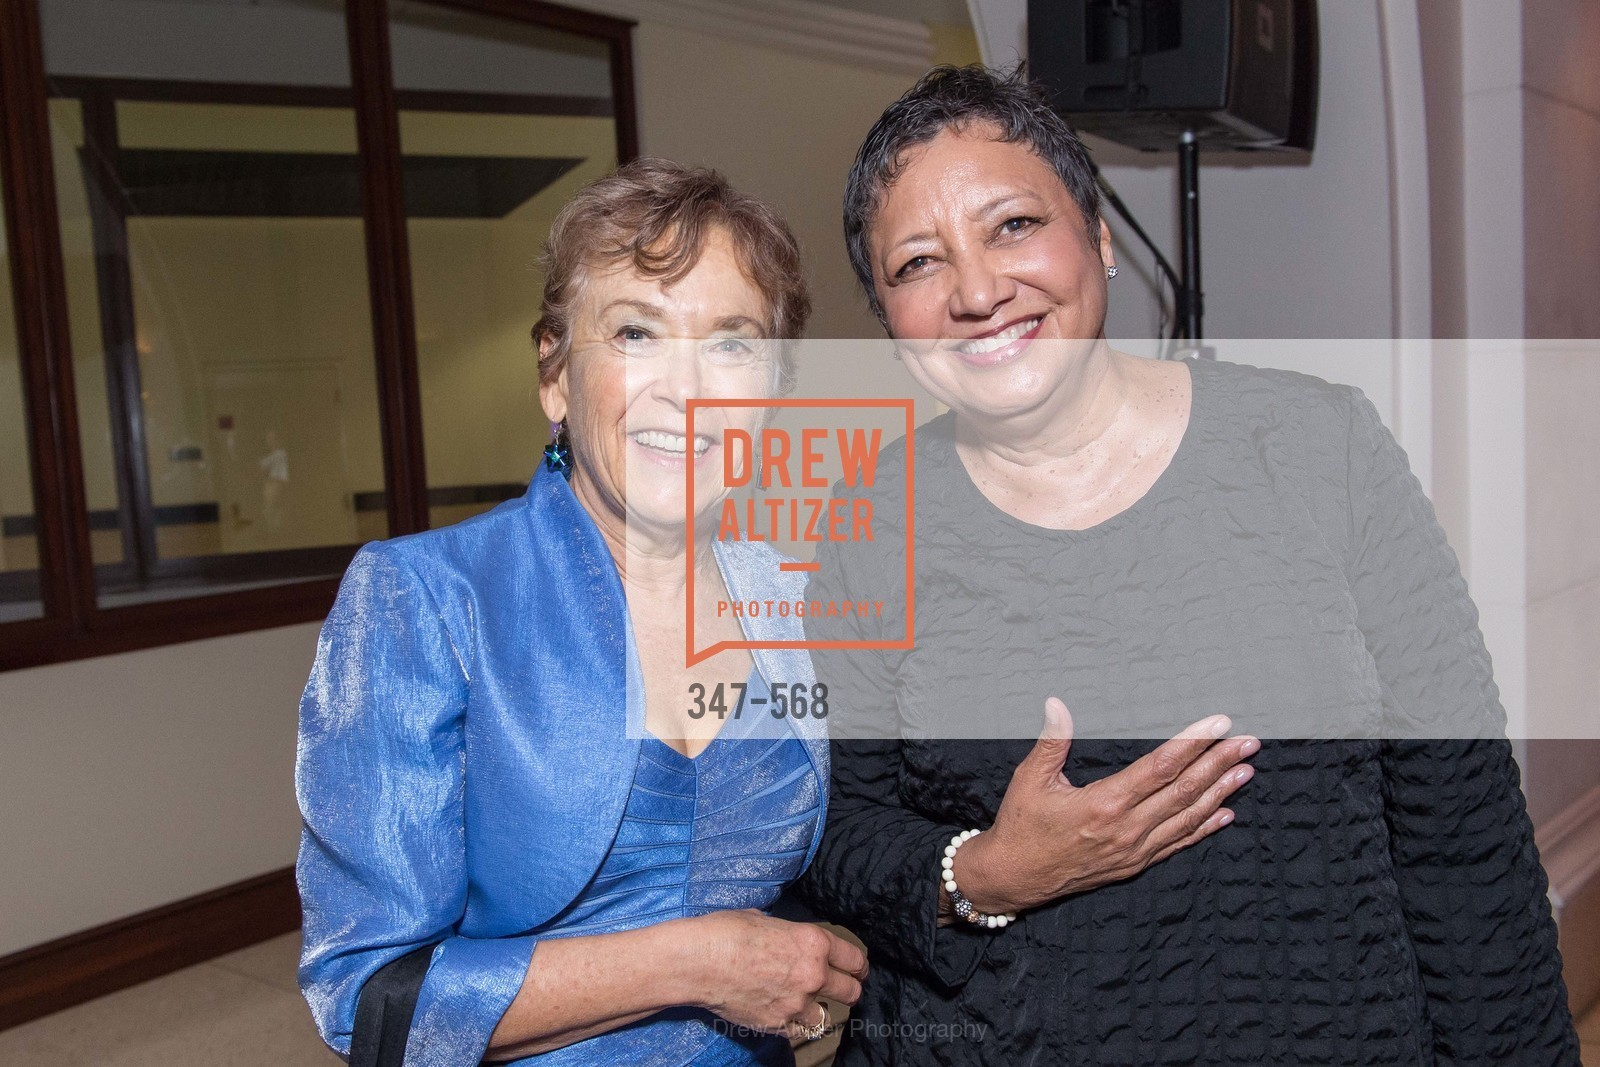 Sheila Jordan, Victoria Jones, SOTHEBY'S  Hosts a Private Viewing of Highlights from the Collection of MRS. PAUL MELLON, US, September 17th, 2014,Drew Altizer, Drew Altizer Photography, full-service agency, private events, San Francisco photographer, photographer california